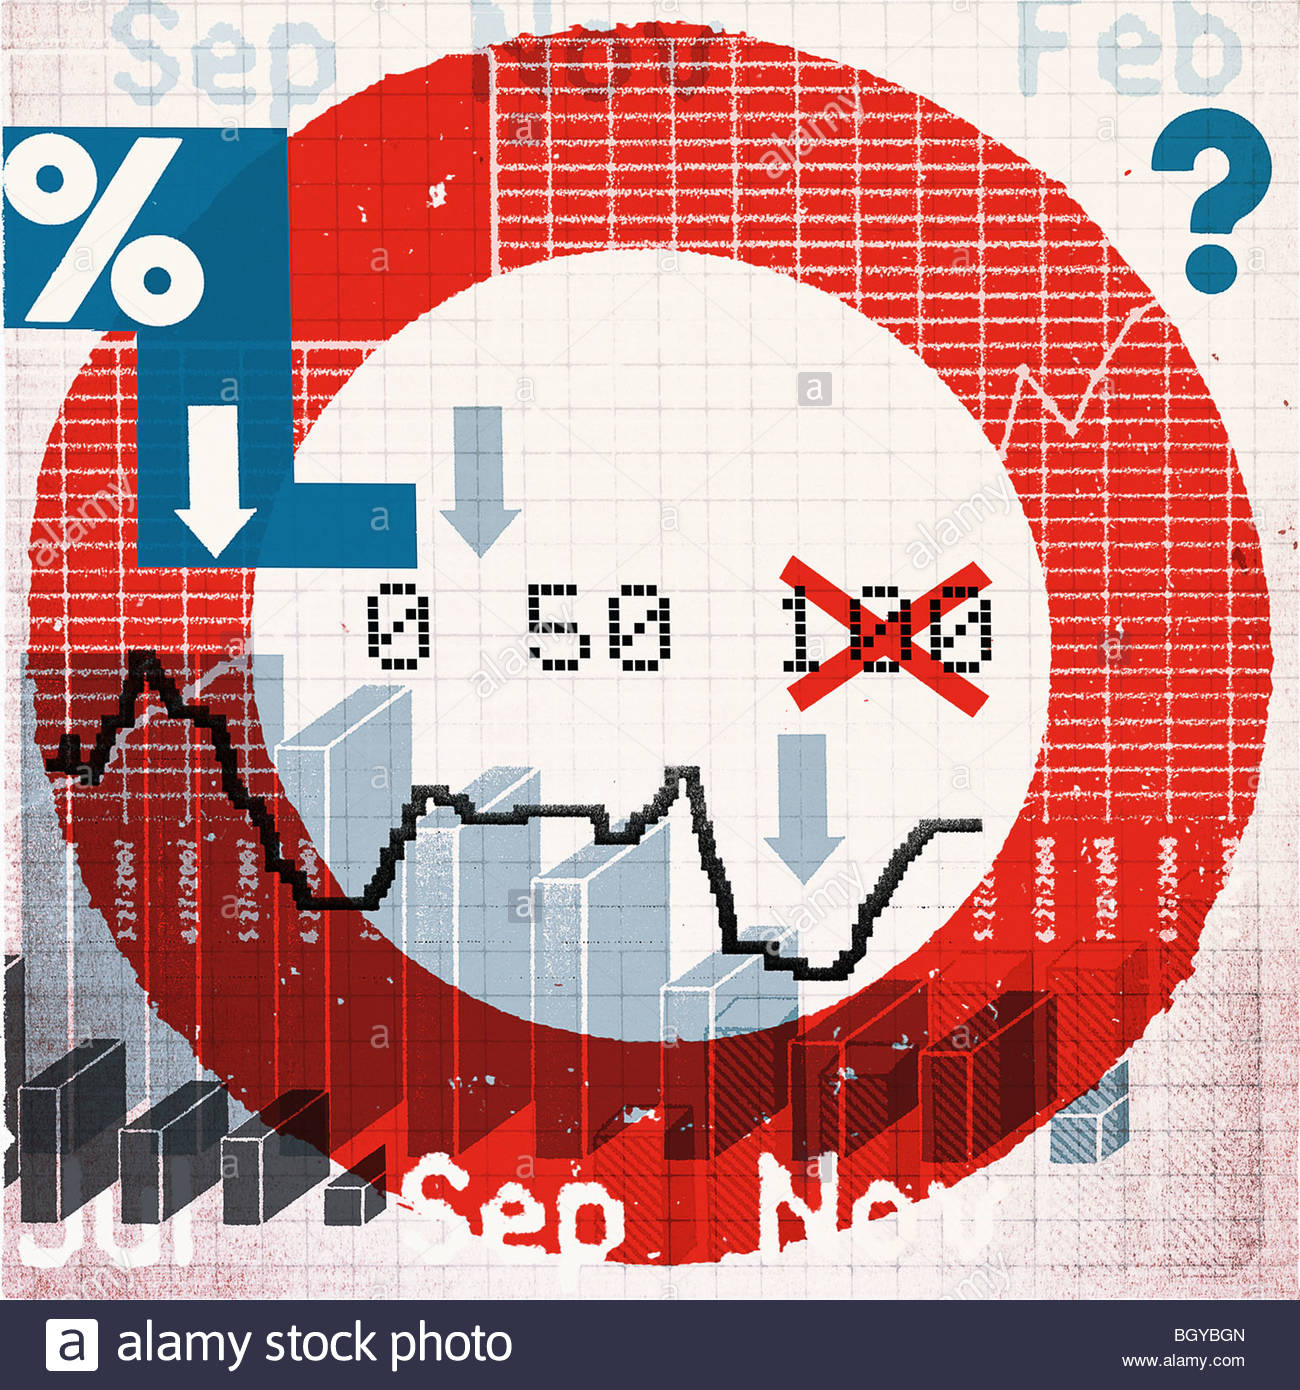 Montage of symbols and financial charts - Stock Image